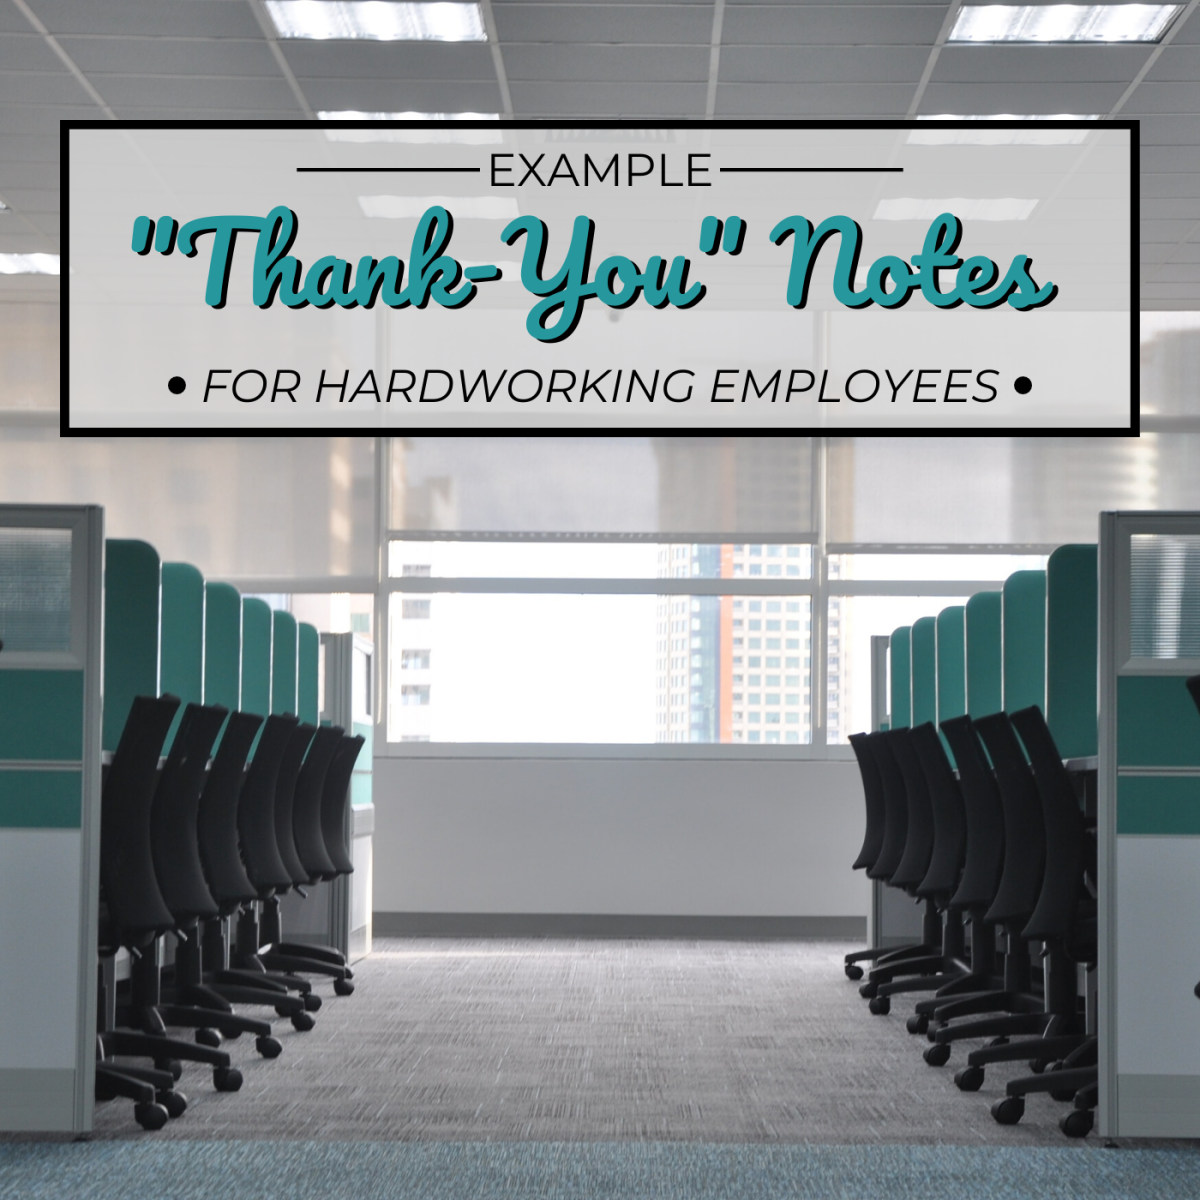 Sample Thank-You Notes and Appreciation Letters for Employees